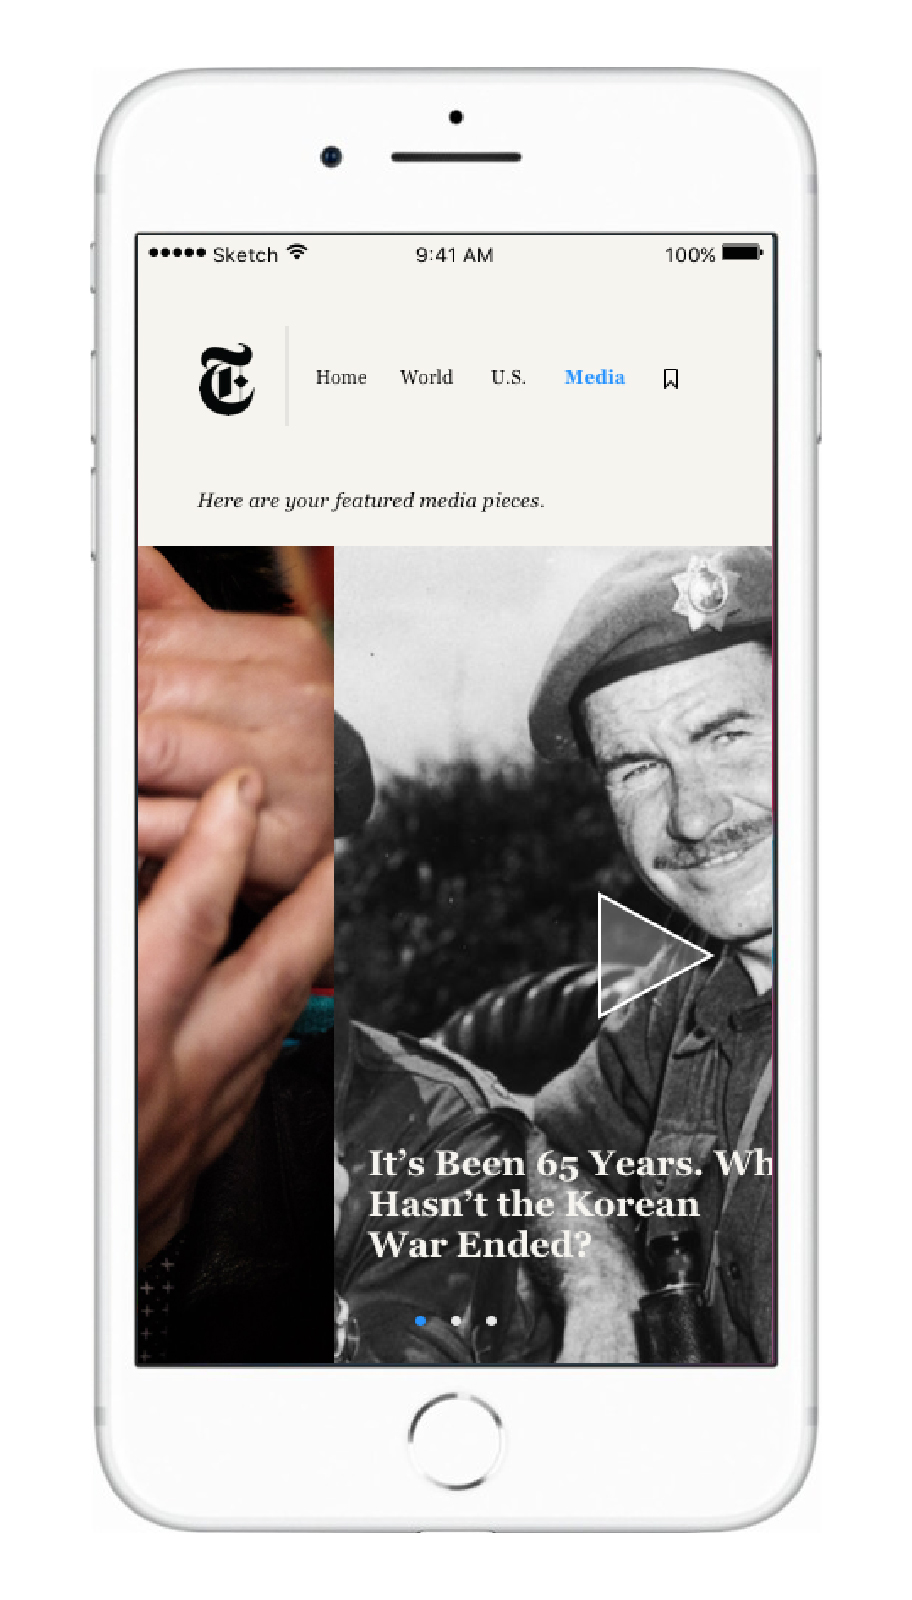 This features a daily photojournalism story, a video story, and a VR story. This successfully incorporates the variety of ways that NYT provides the news.